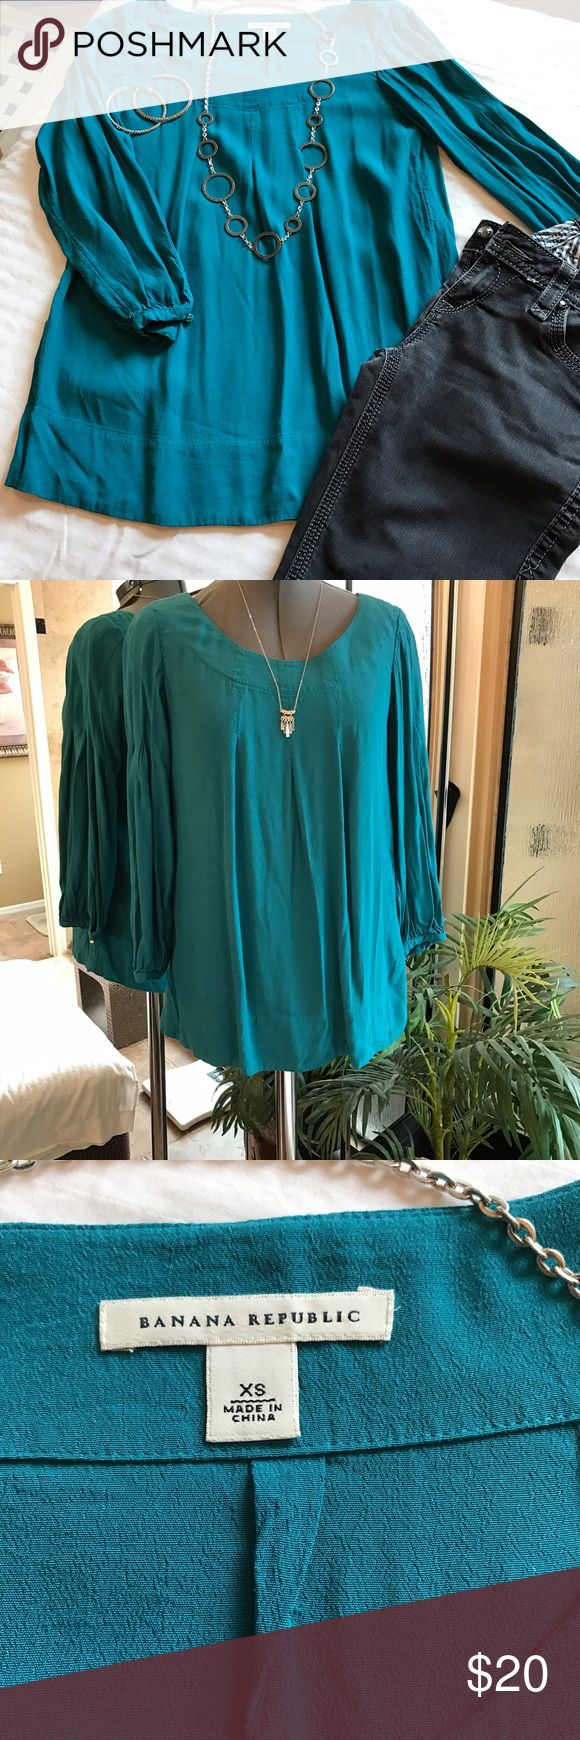 Banana republic brand turquoise top extra small Banana republic brand top beautiful turquoise color very flattering can be worn out or tucked in size extra small but could also easily fit a small Banana Republic Tops Blouses